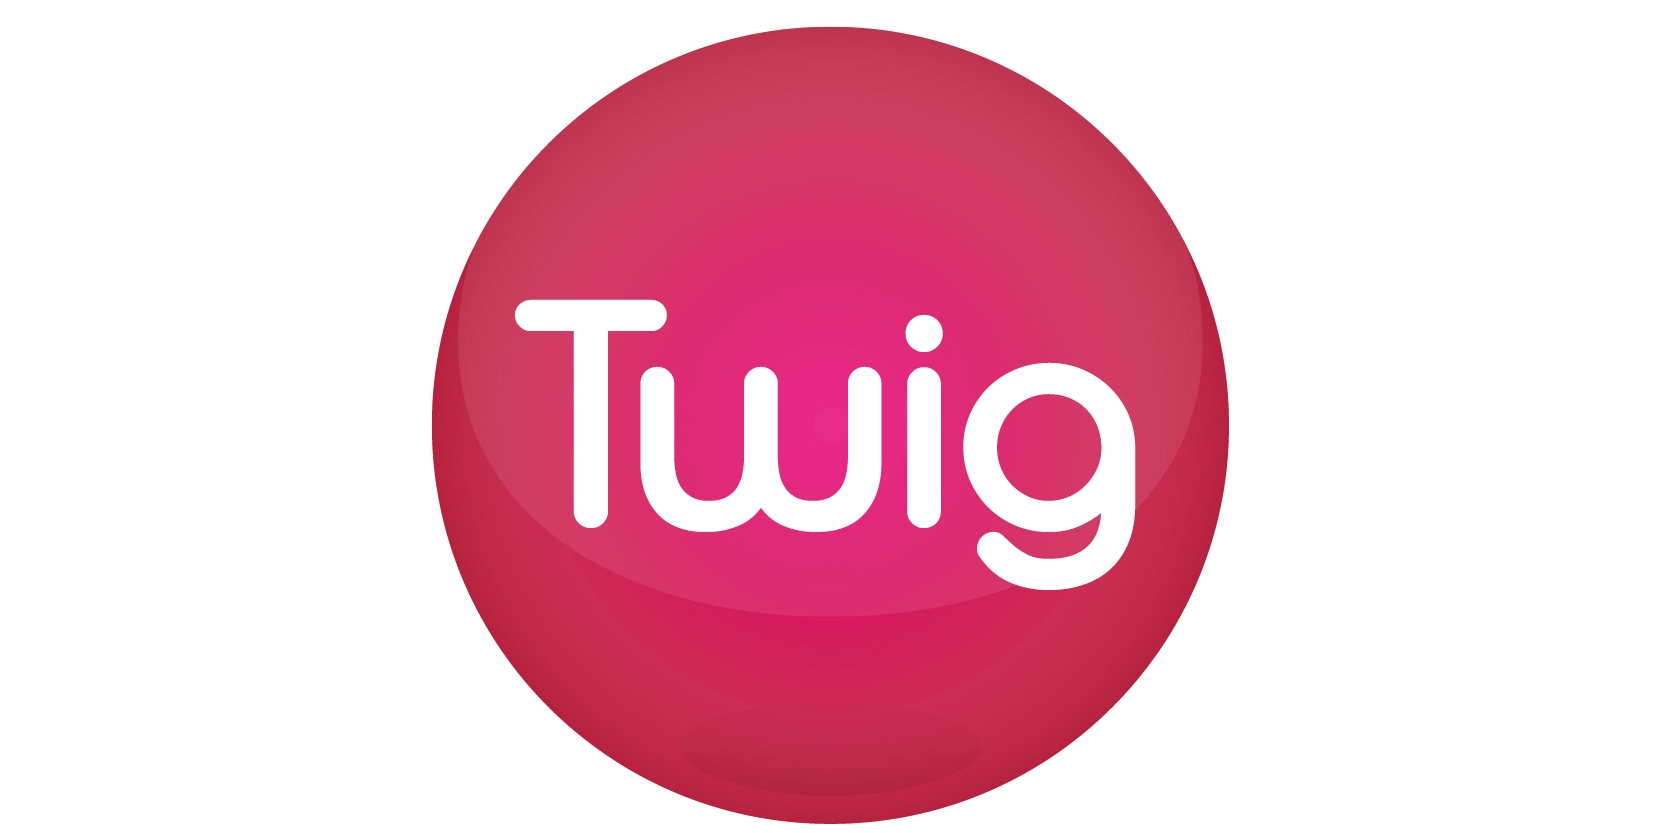 Twig_Centered-1.png